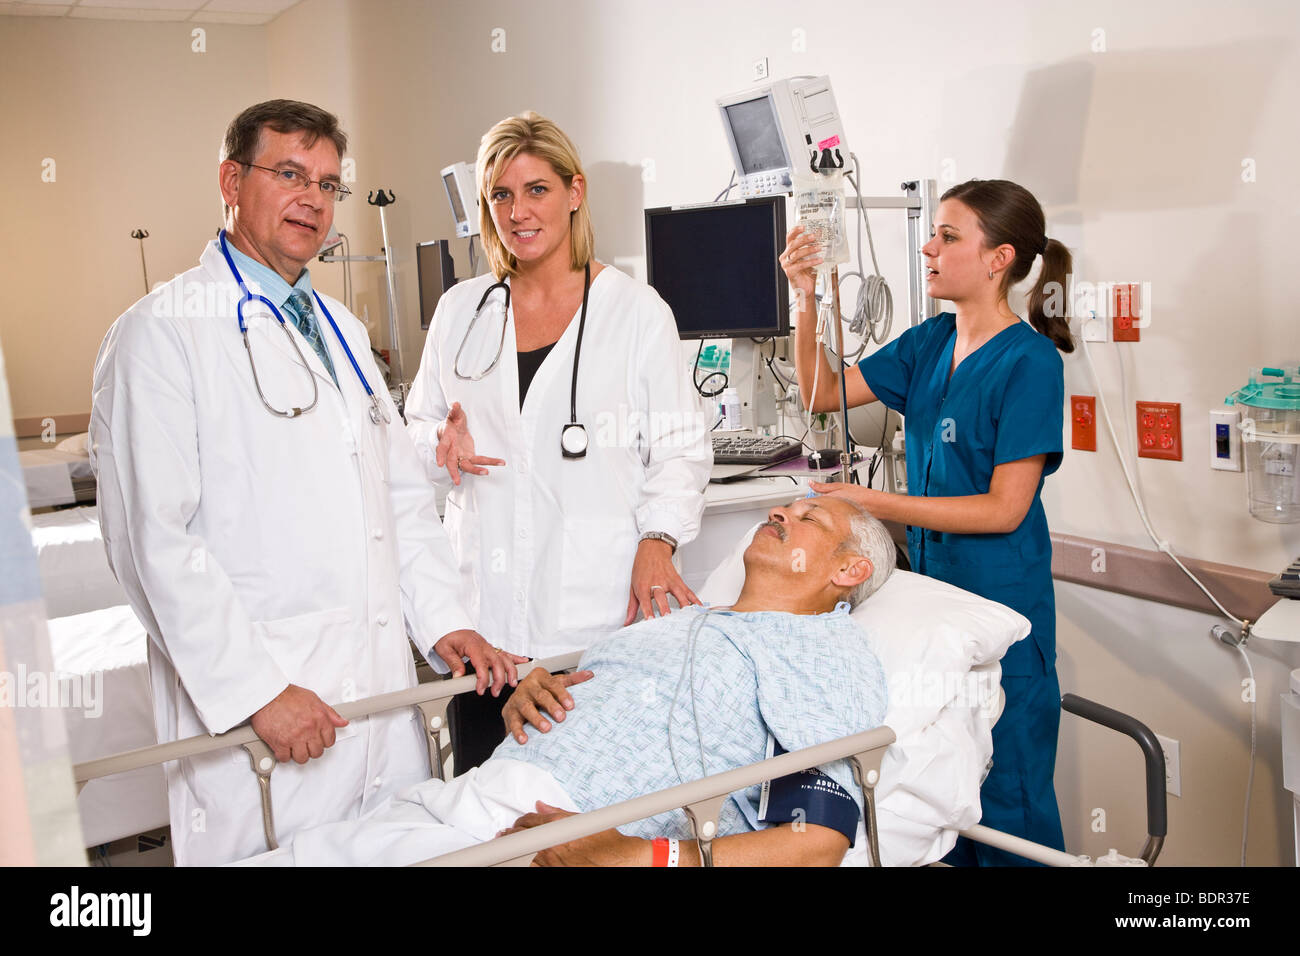 doctors and nurse in hospital recovery room with patient